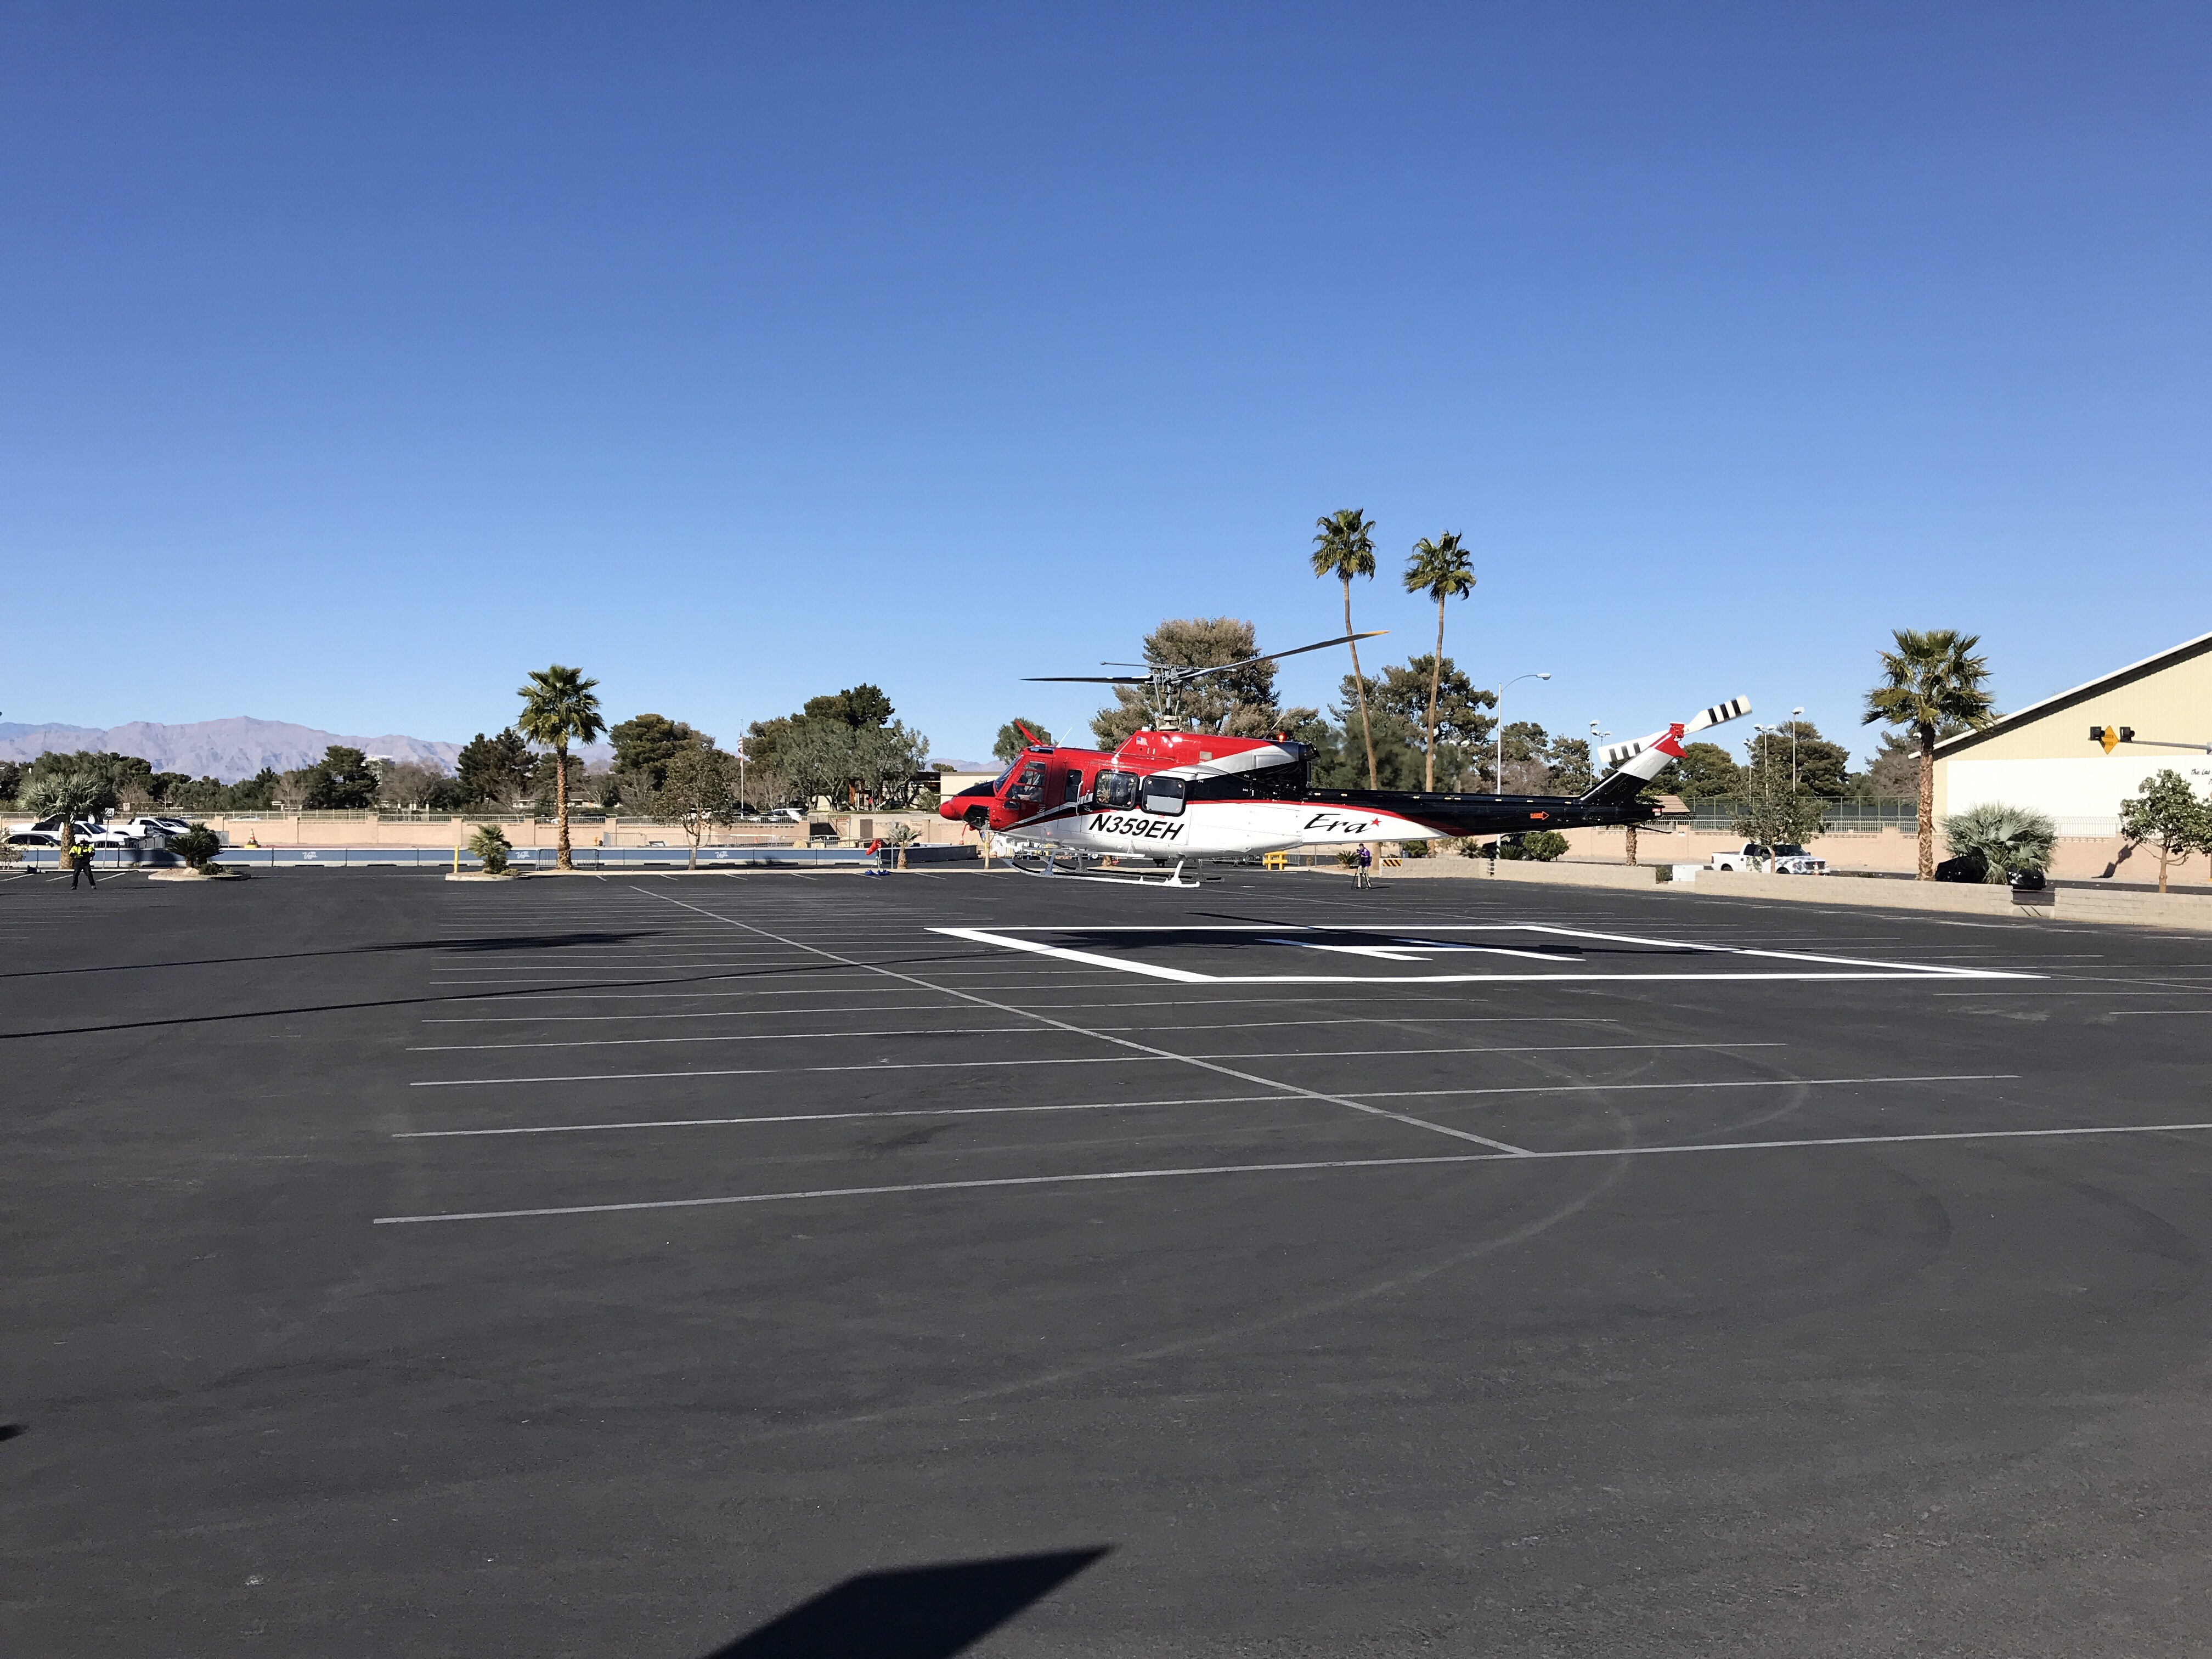 Helicopter landing at Heli Expo 2018 in Las Vegas.